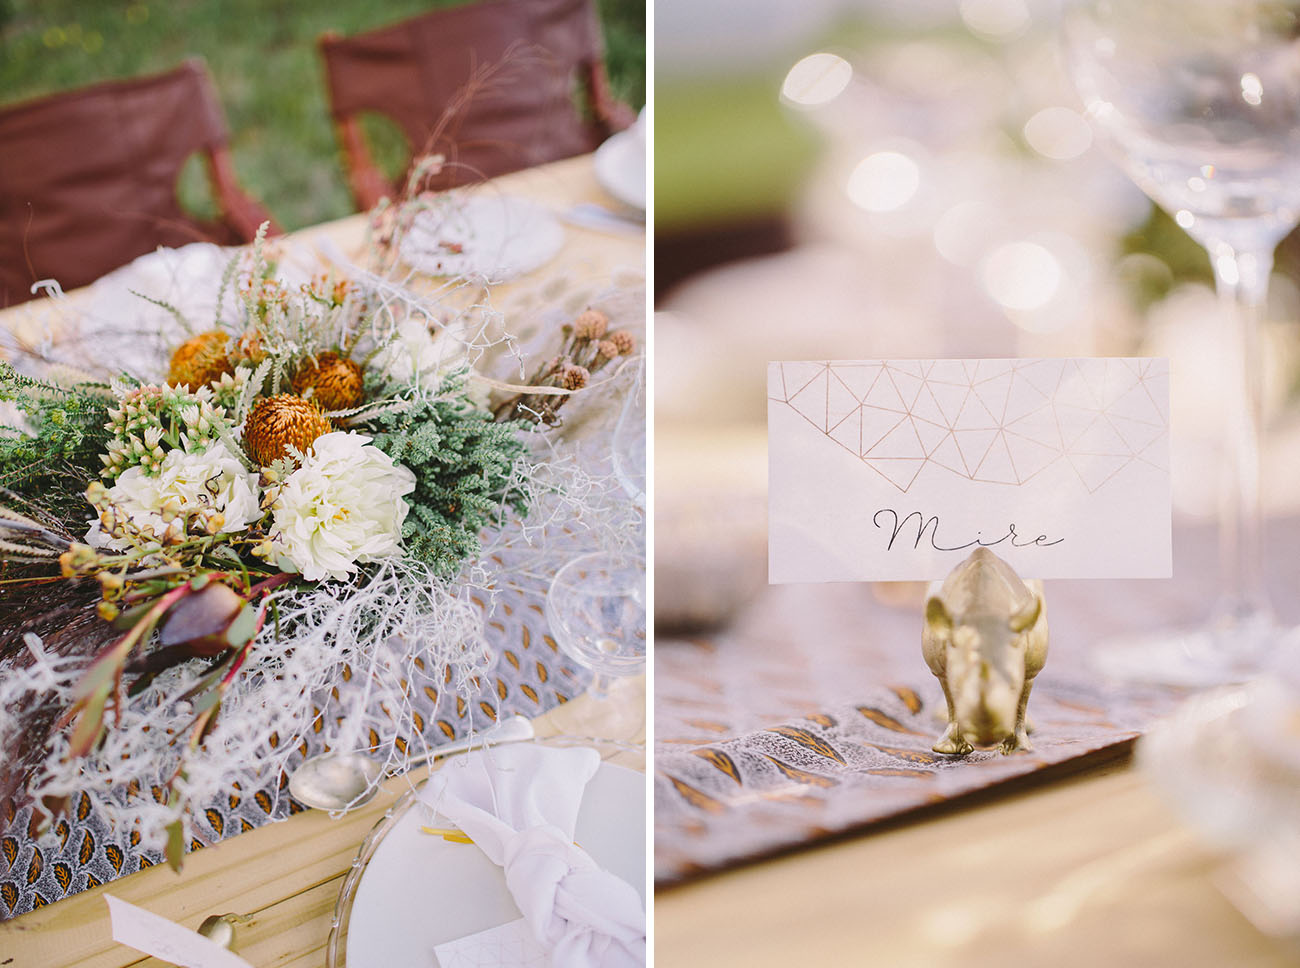 The centerpiece was done with various grasses, orange blooms and feathers